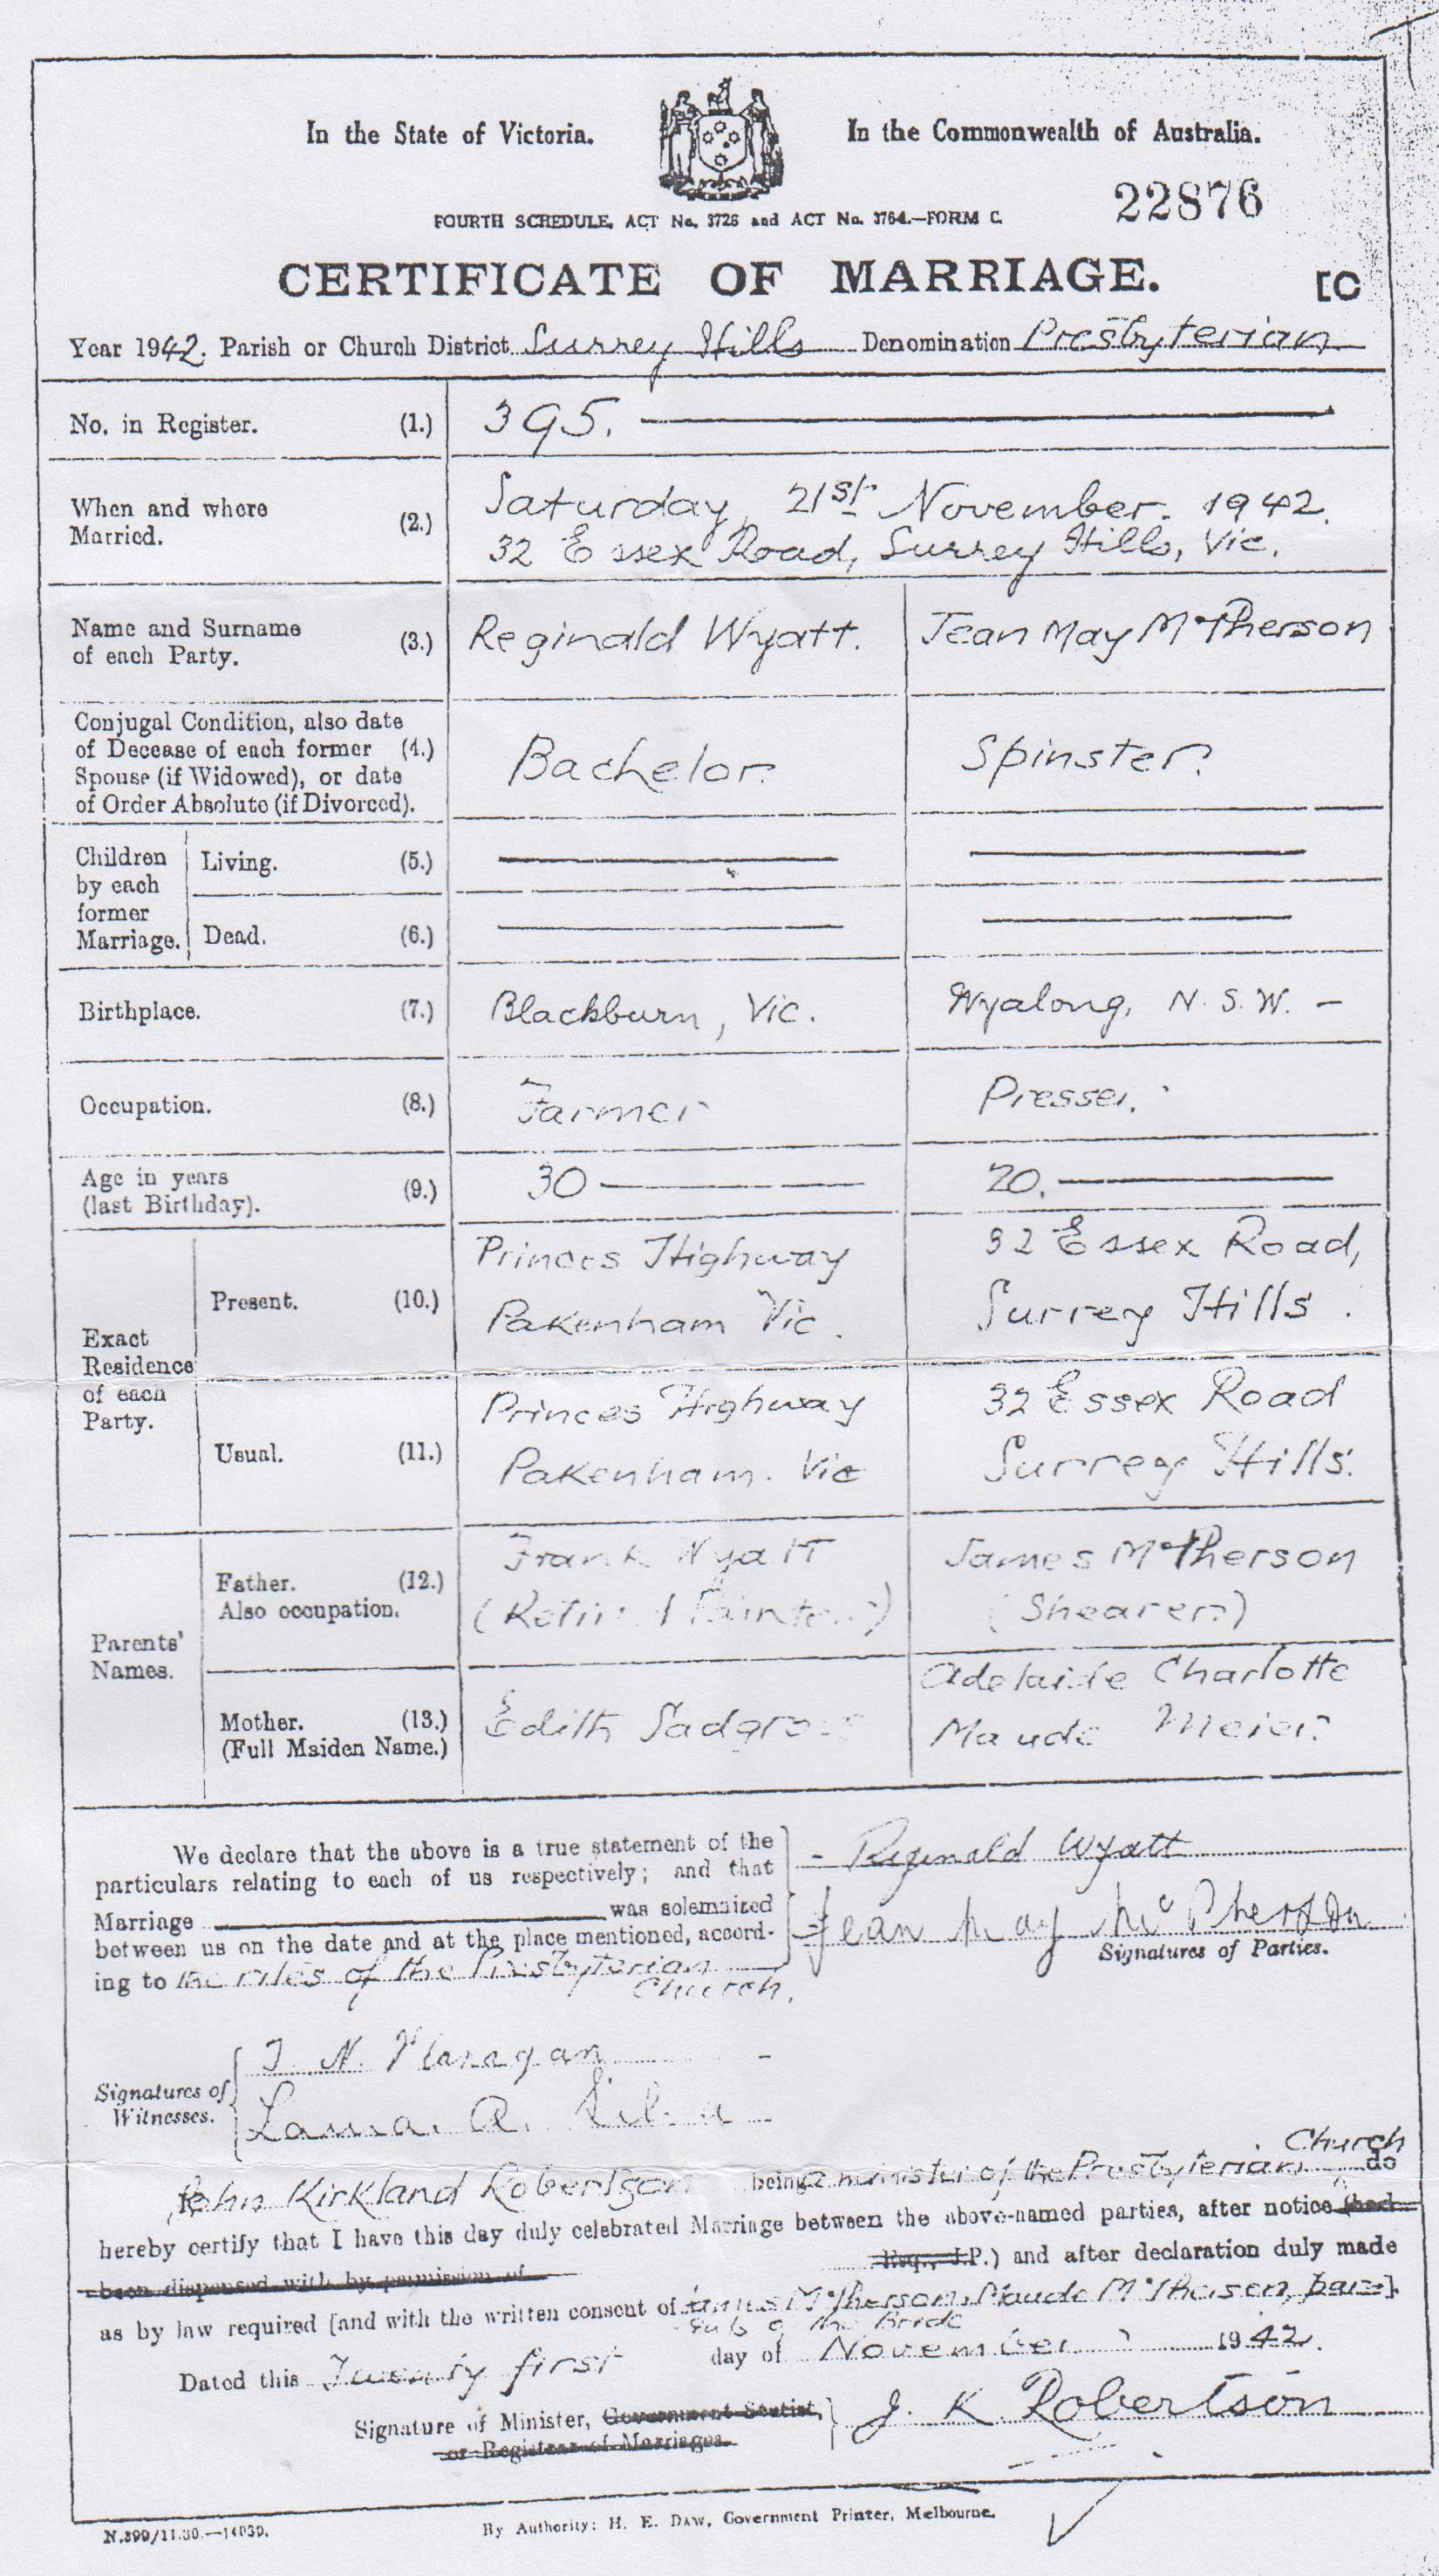 Jean McPherson marriage certificate